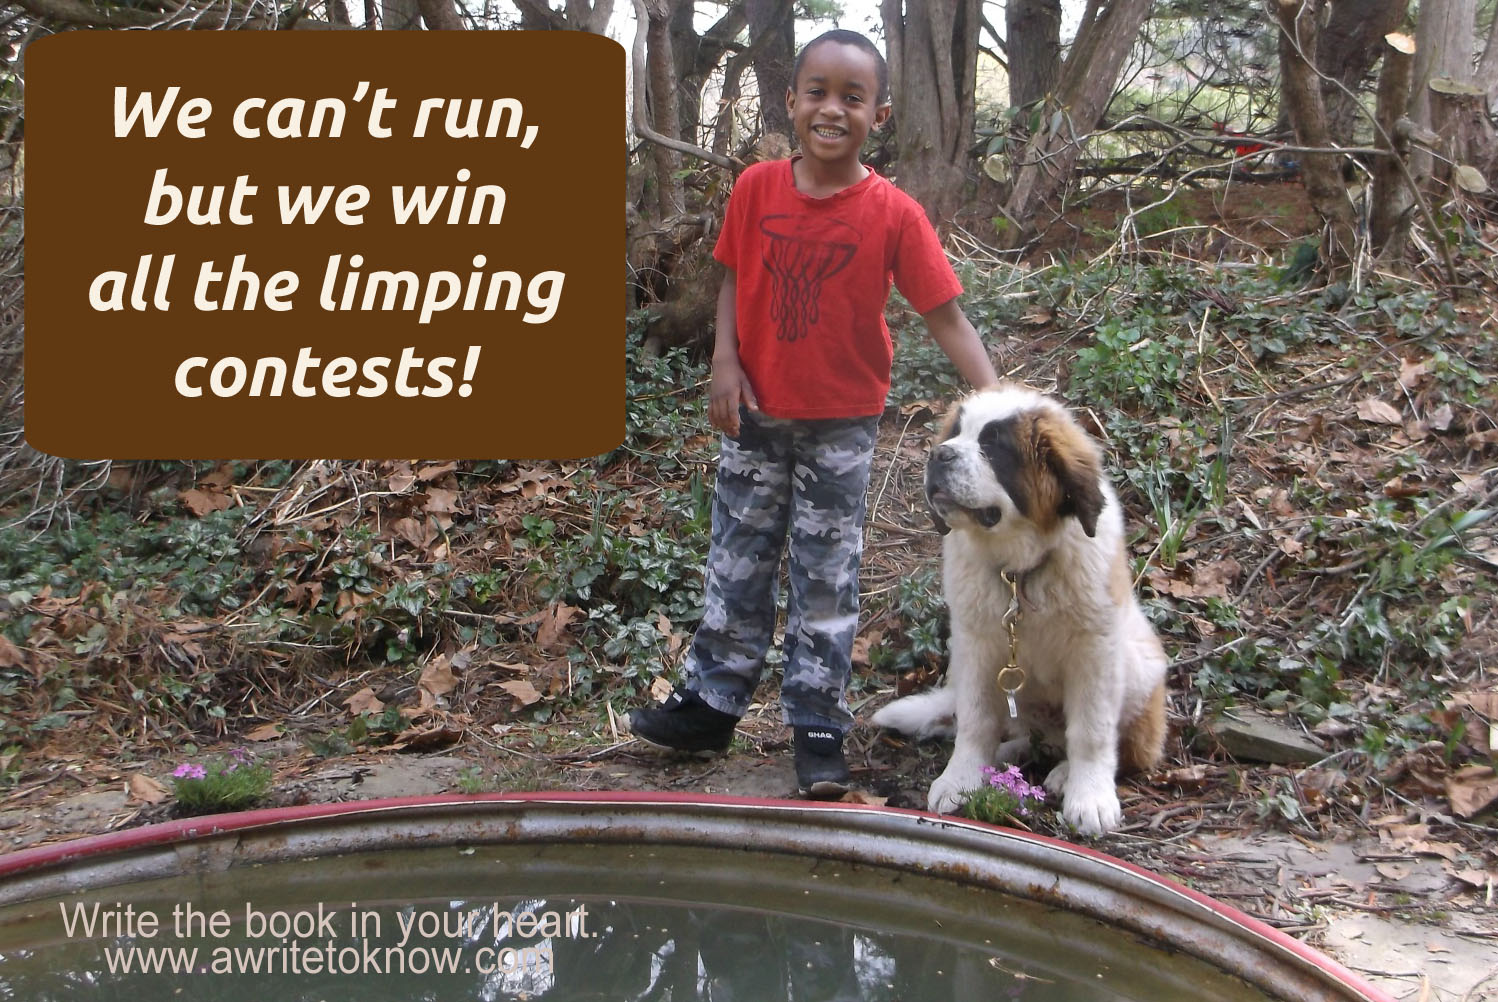 """A boy and a dog standing by a pond with words that say """"We can't run but we win all limping contests."""